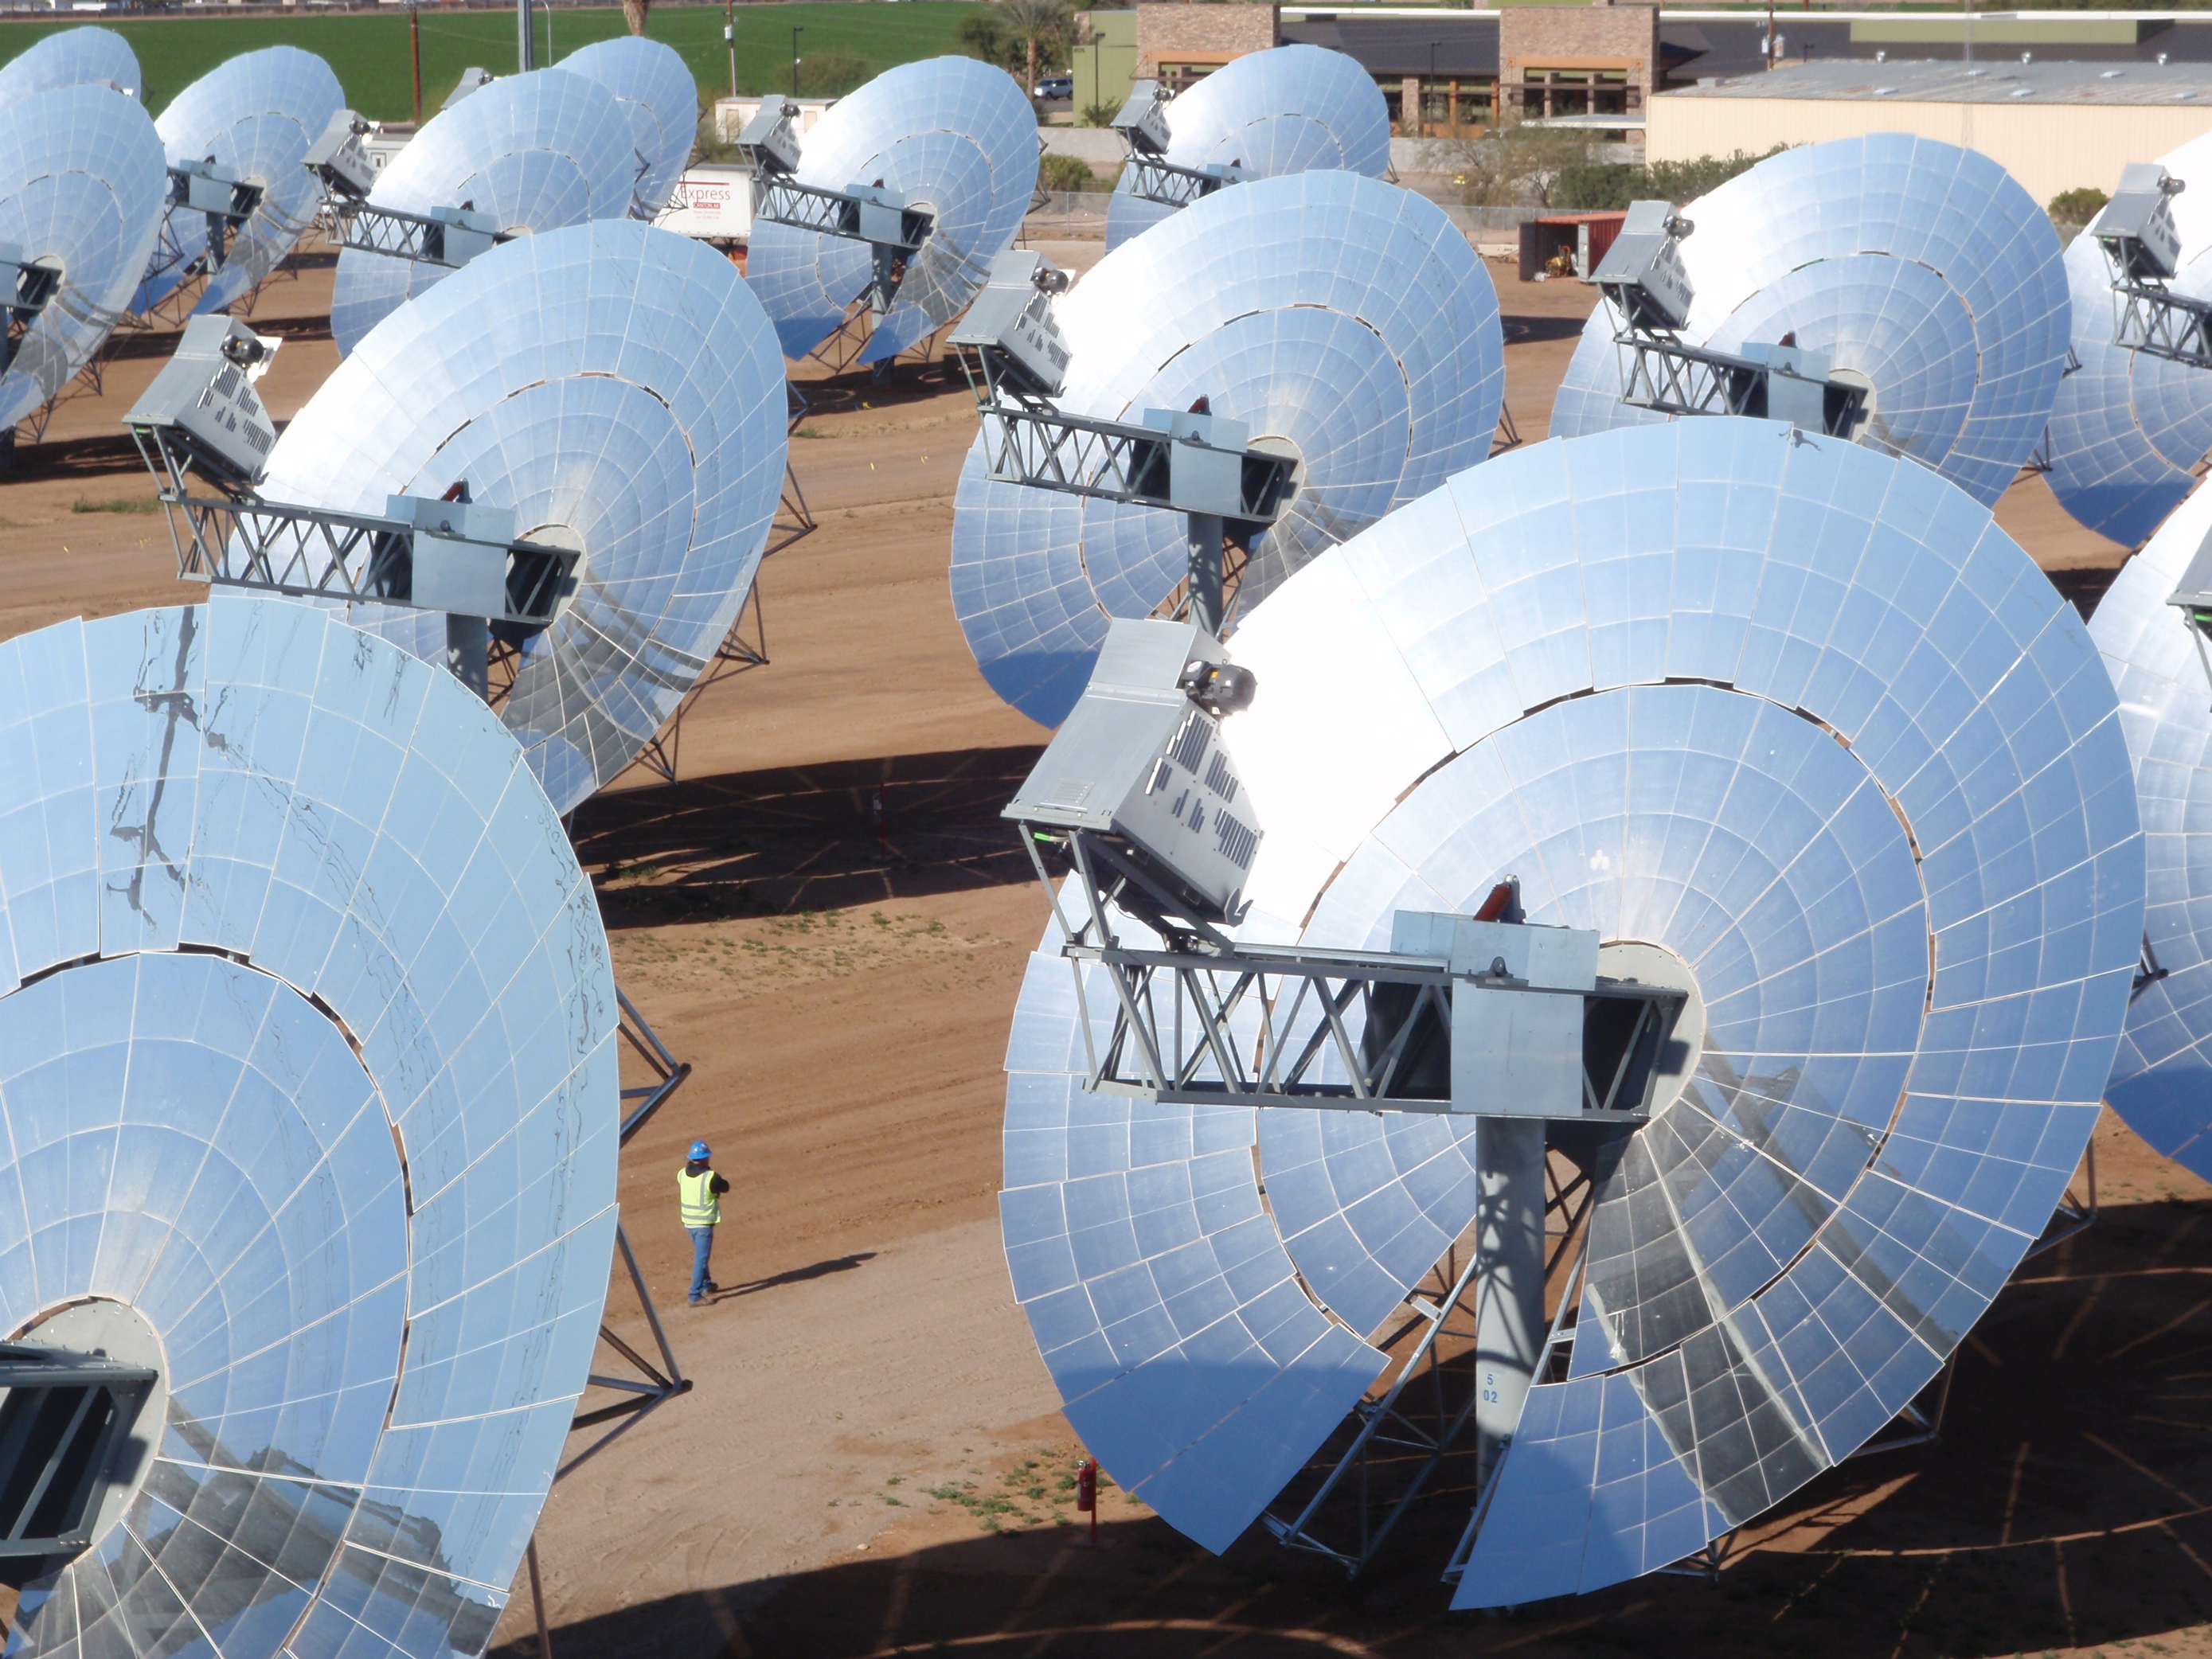 Stirling Energy Systems made solar dishes which generate heat to drive an engine which produces electricity.